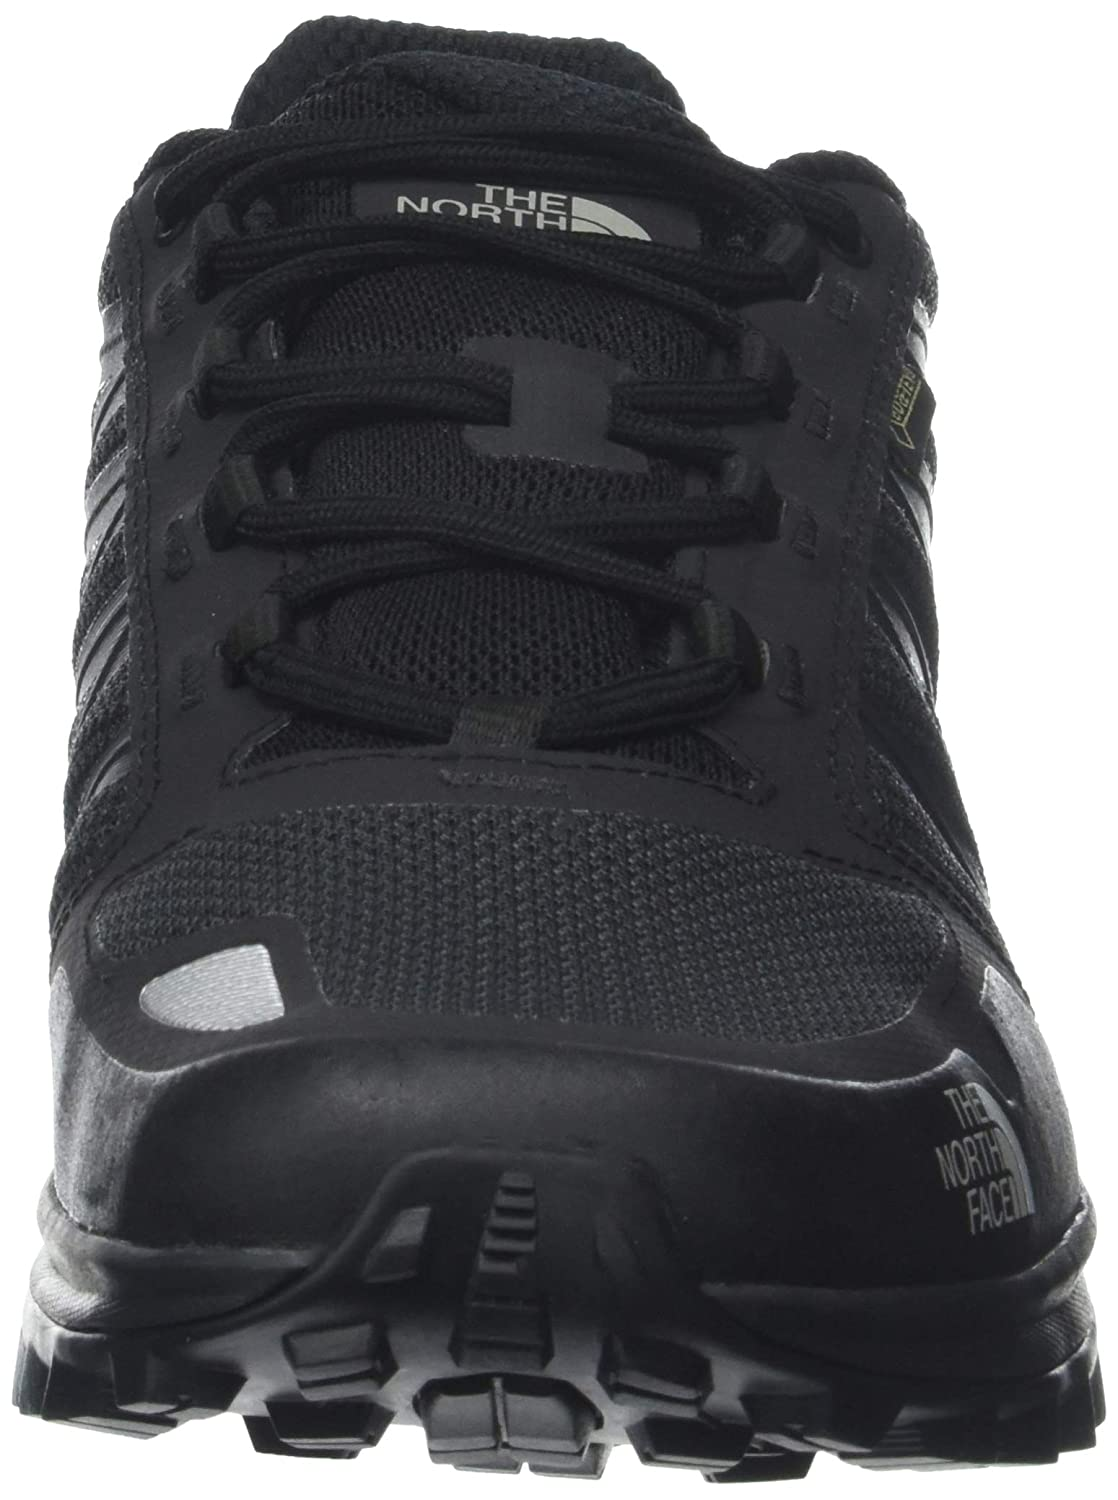 4001648f224 THE NORTH FACE Men's Litewave Fastpack Gore-tex Low Rise Hiking Boots:  Amazon.co.uk: Shoes & Bags